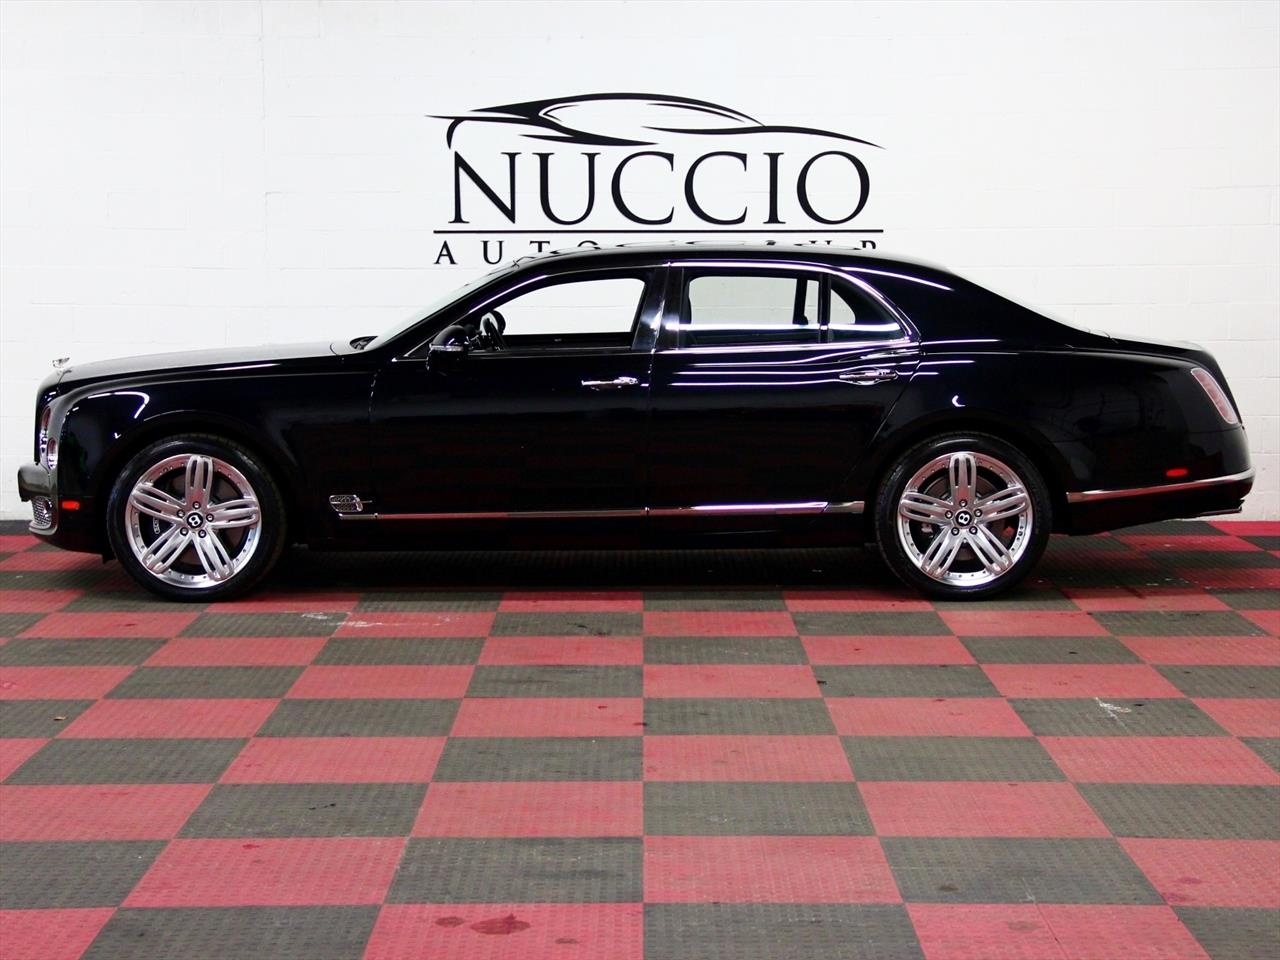 2012 Bentley Mulsanne on bmw 5 series owners manual, audi a6 owners manual, bmw 3 series owners manual, aston martin vantage owners manual, chrysler 300 owners manual,